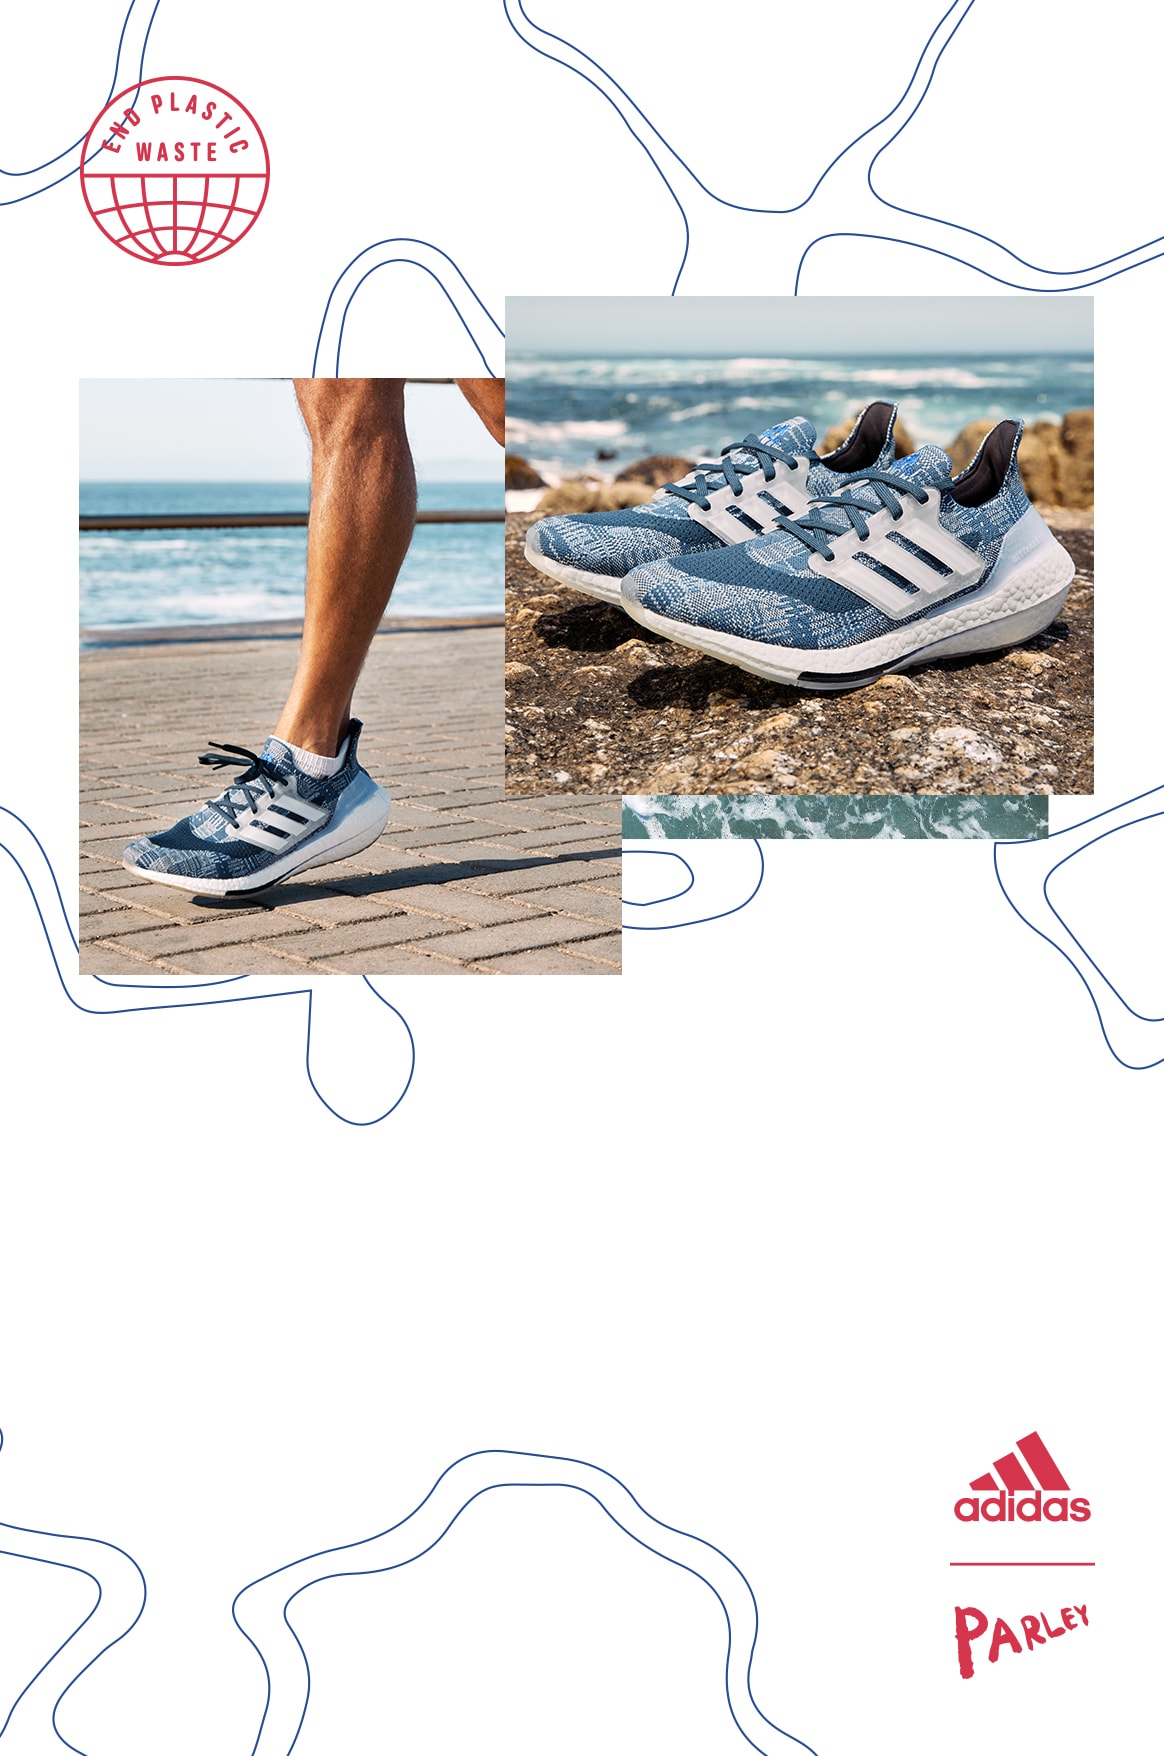 Close-up of a man running, wearing Primeblue shorts and Ultraboost 21 running shoes